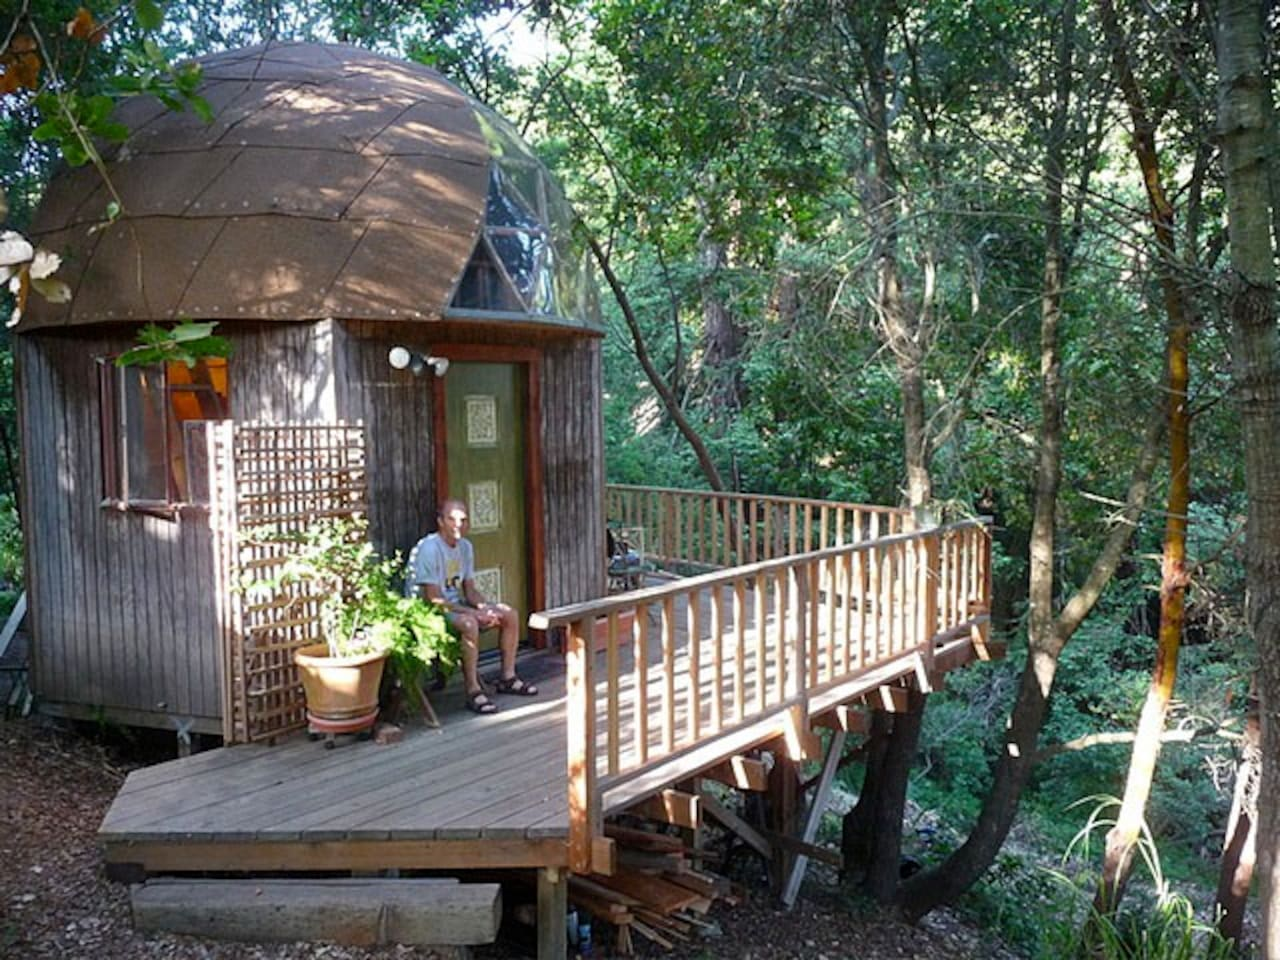 mushroom dome cabin 1 on airbnb in the world cabins for rent